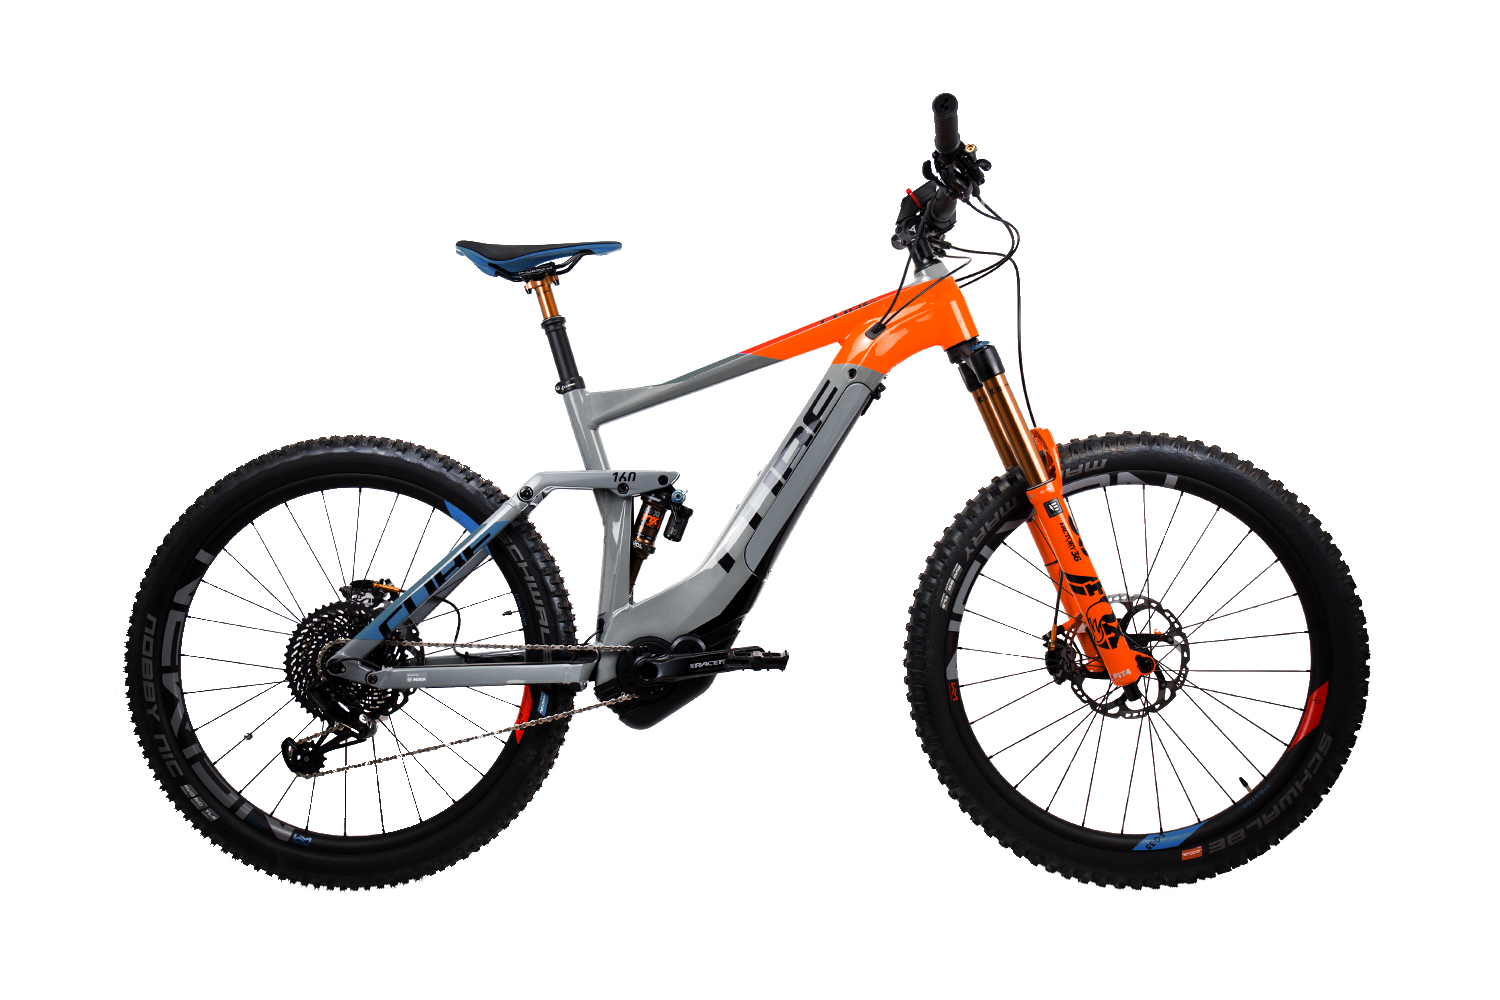 Cube Stereo Hybrid 160 Action Team 500 KIOX 27.5 actionteam 2019 - 27.5 -  18 Zoll